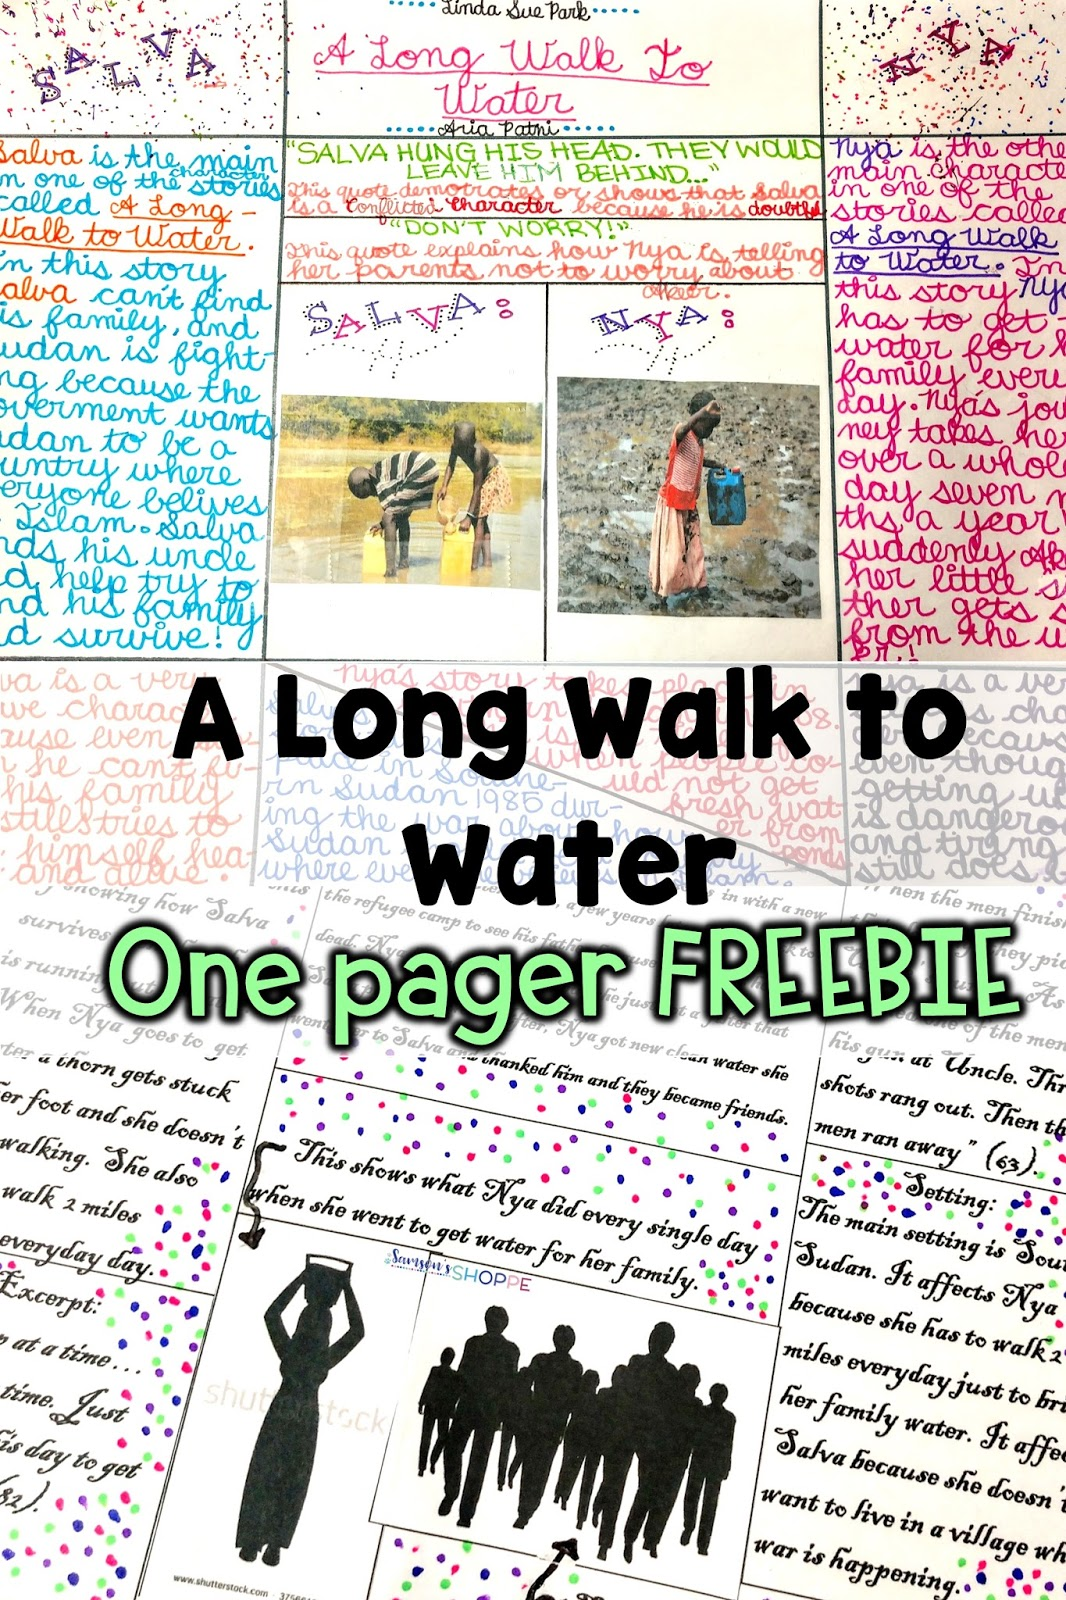 A long walk to water essay questions